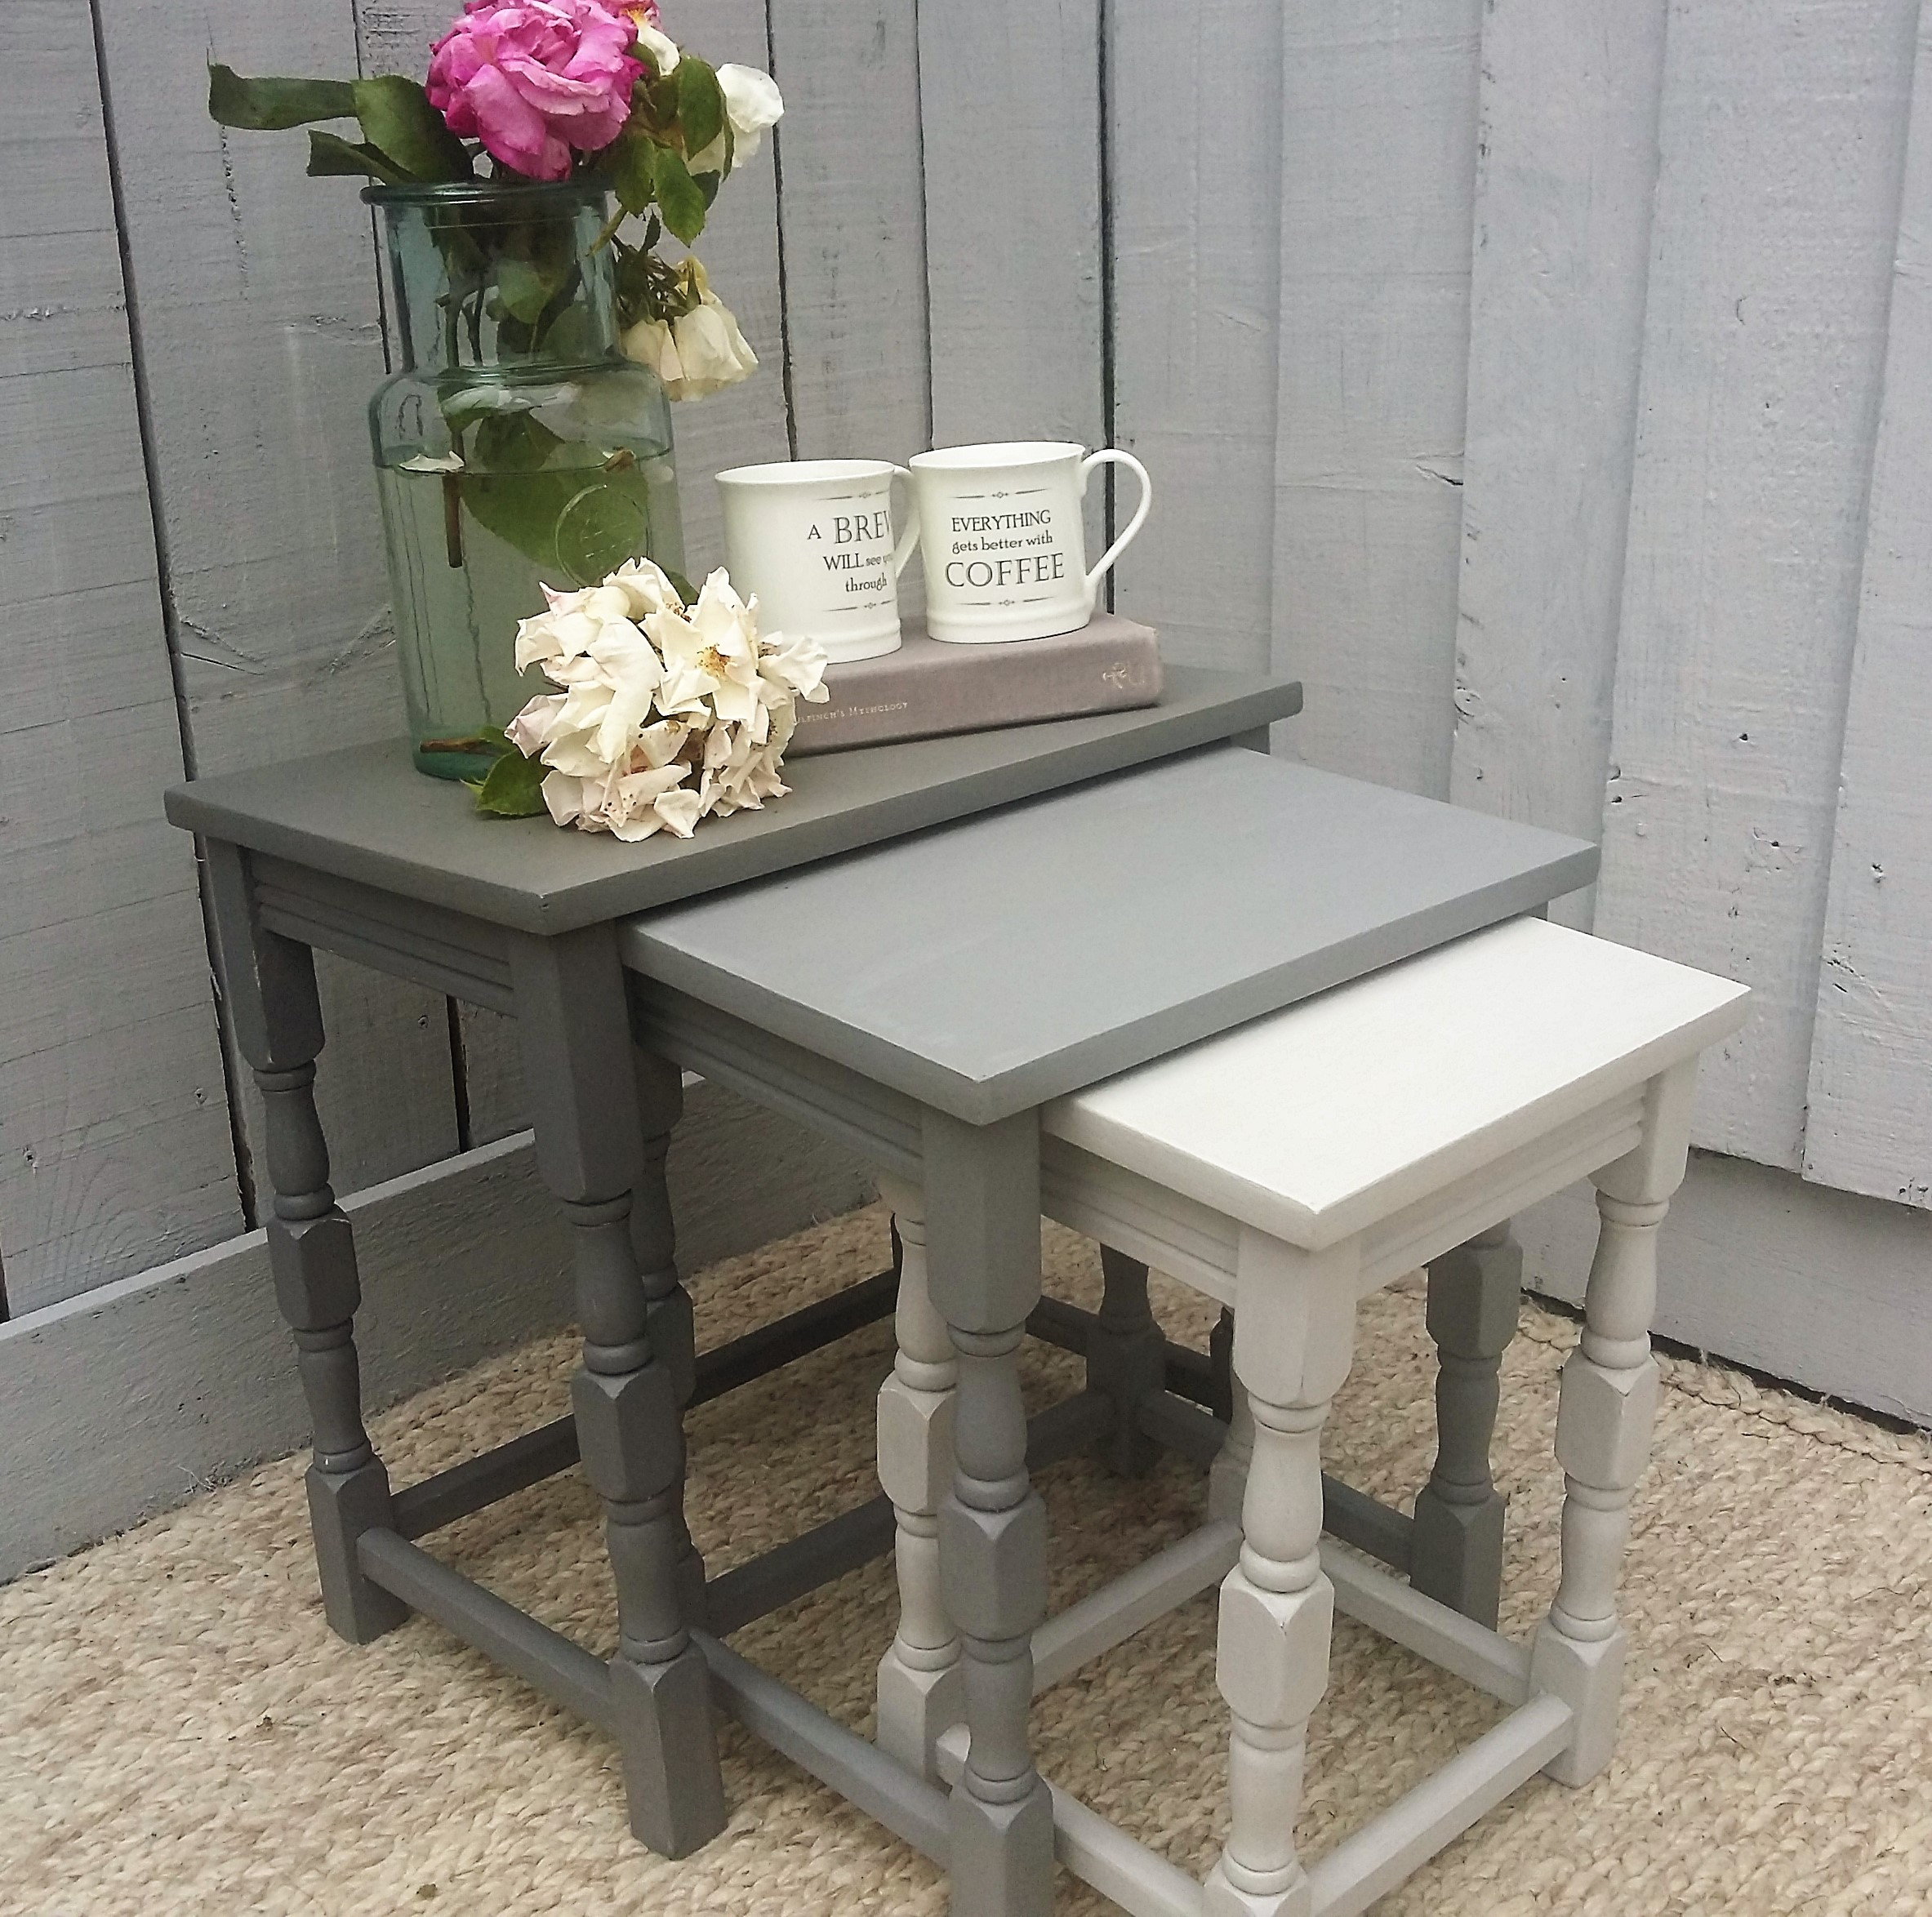 Shabby Chic Nesting Tables ~ Shabby chic nest of tables in trio farrow ball shades